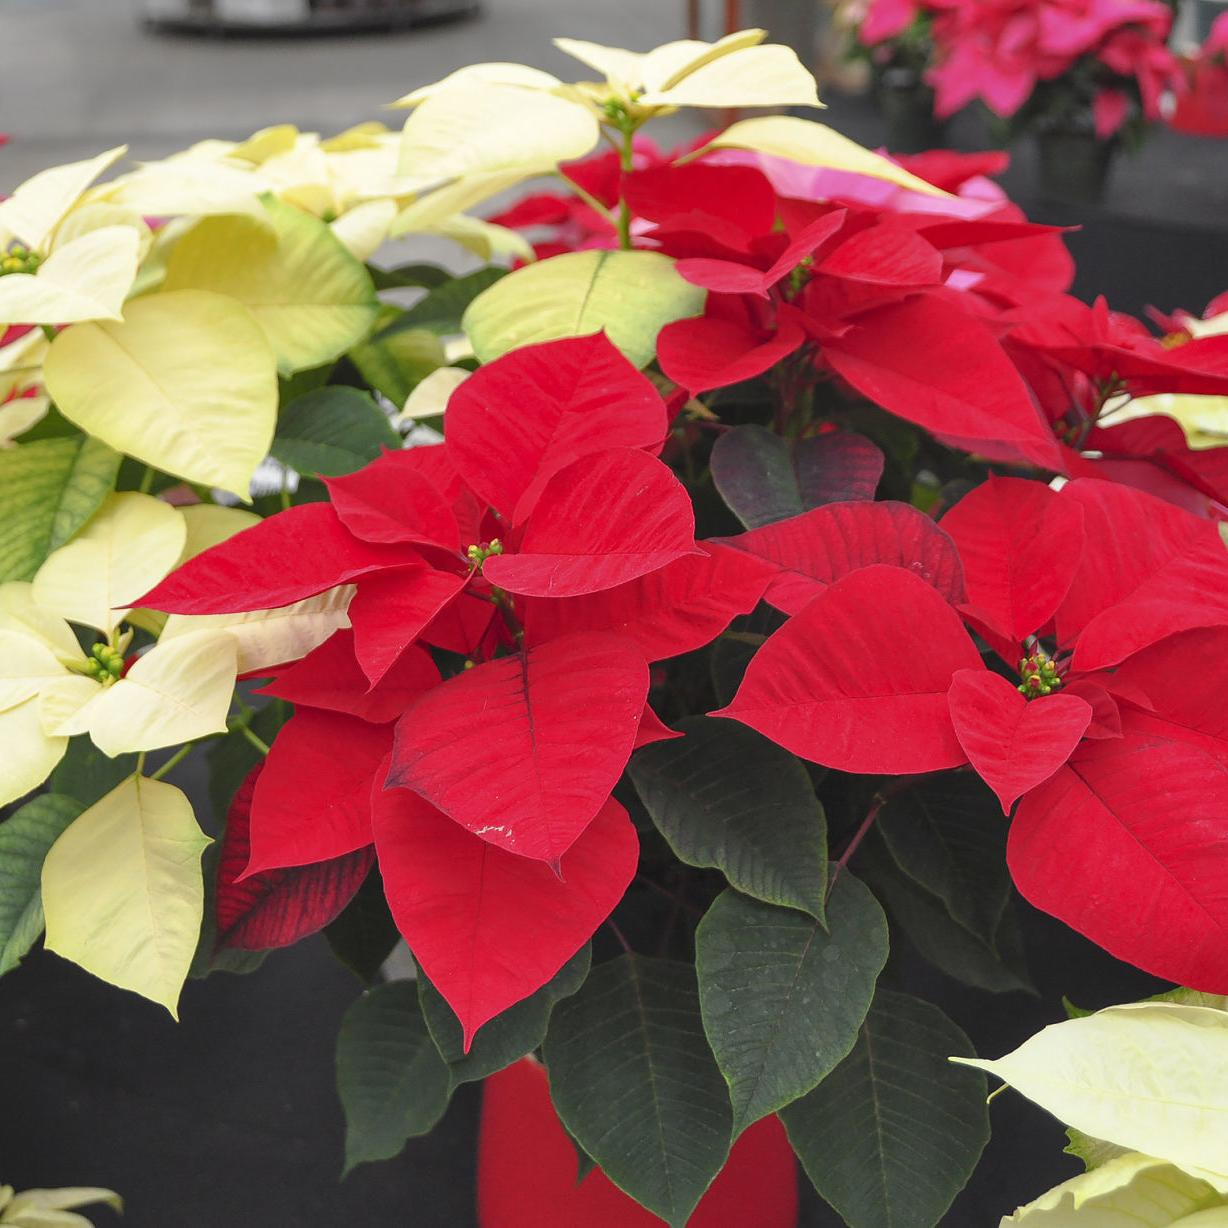 Ask A Master Gardener Poinsettia Plants Are Tricky To Keep